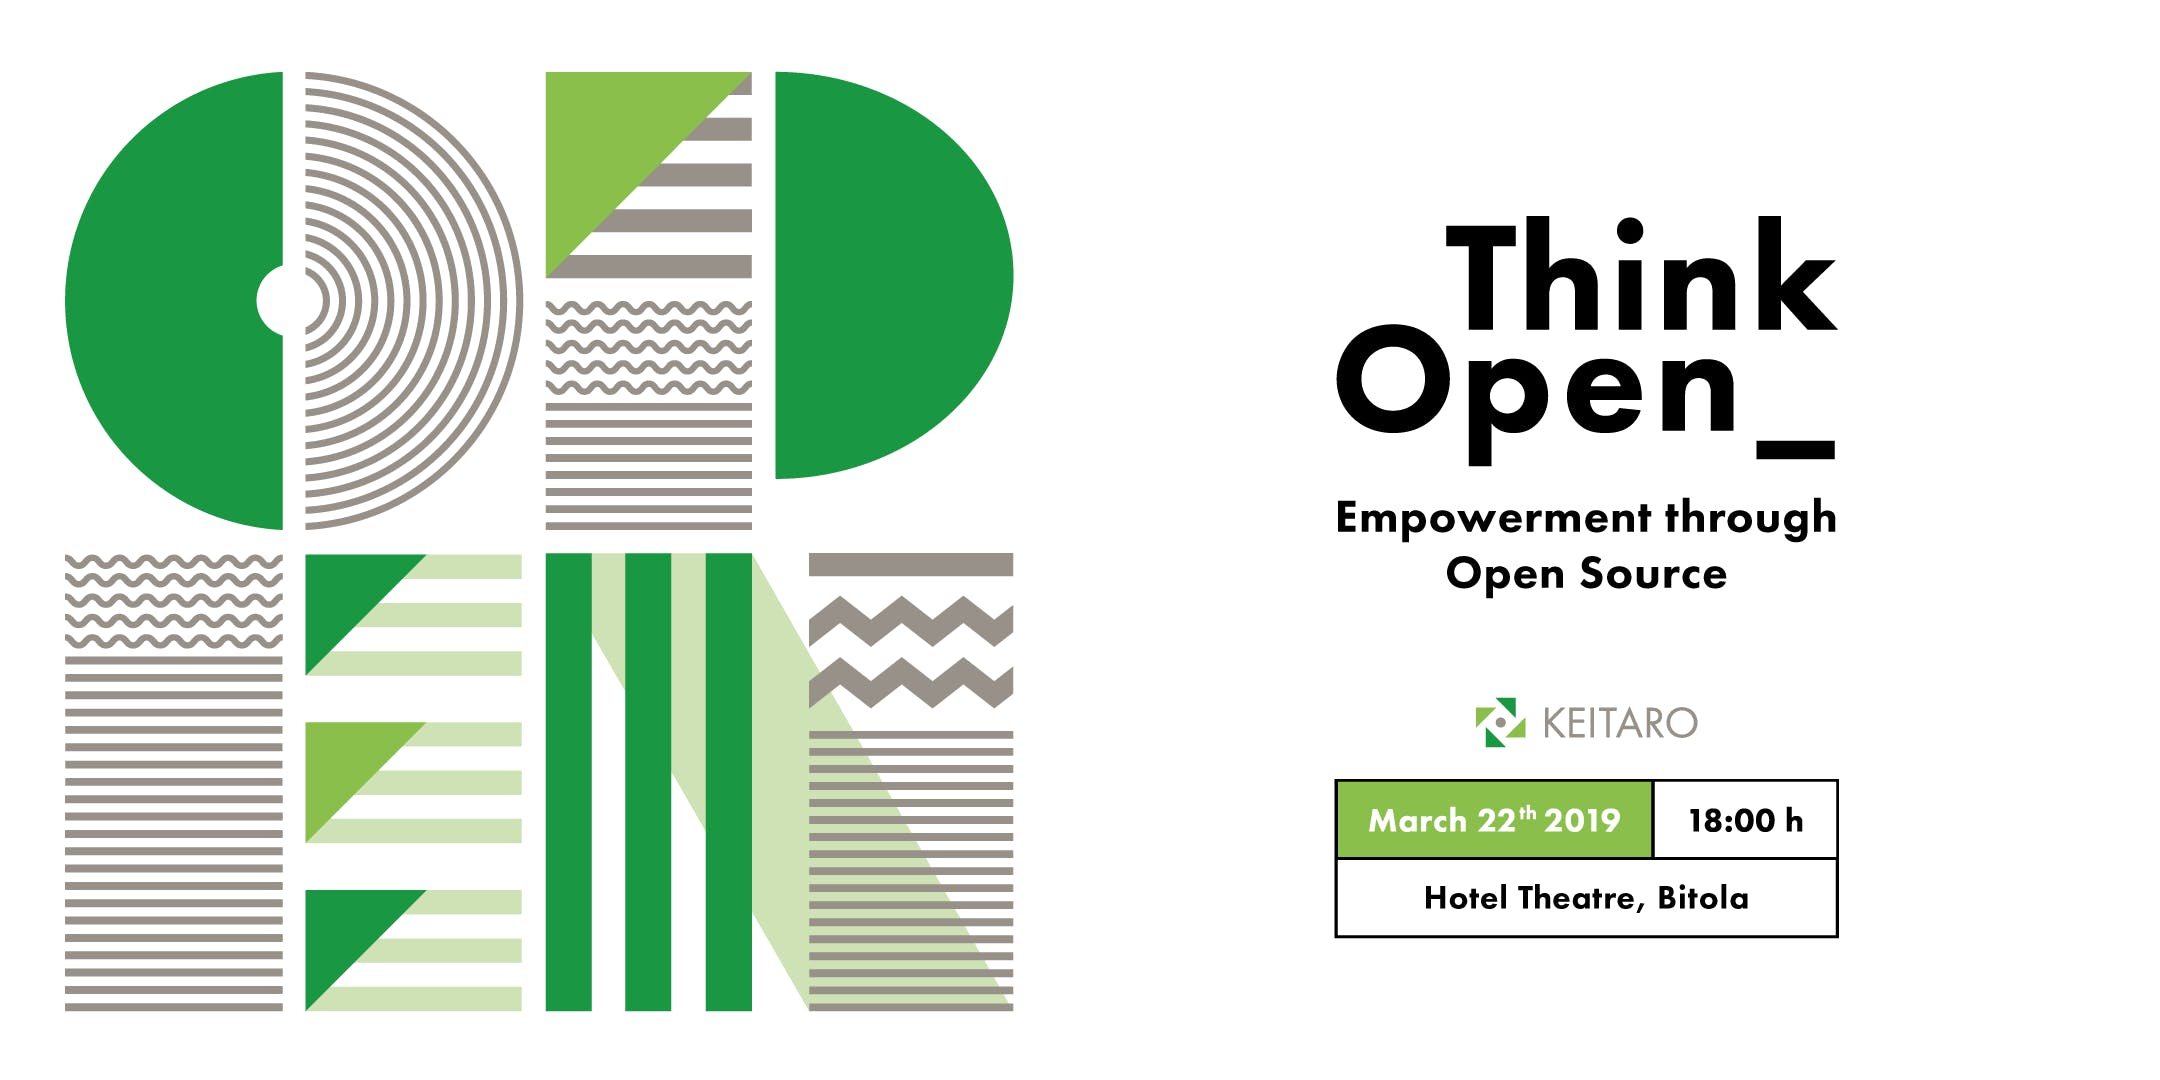 Think Open - Empowerment through open source